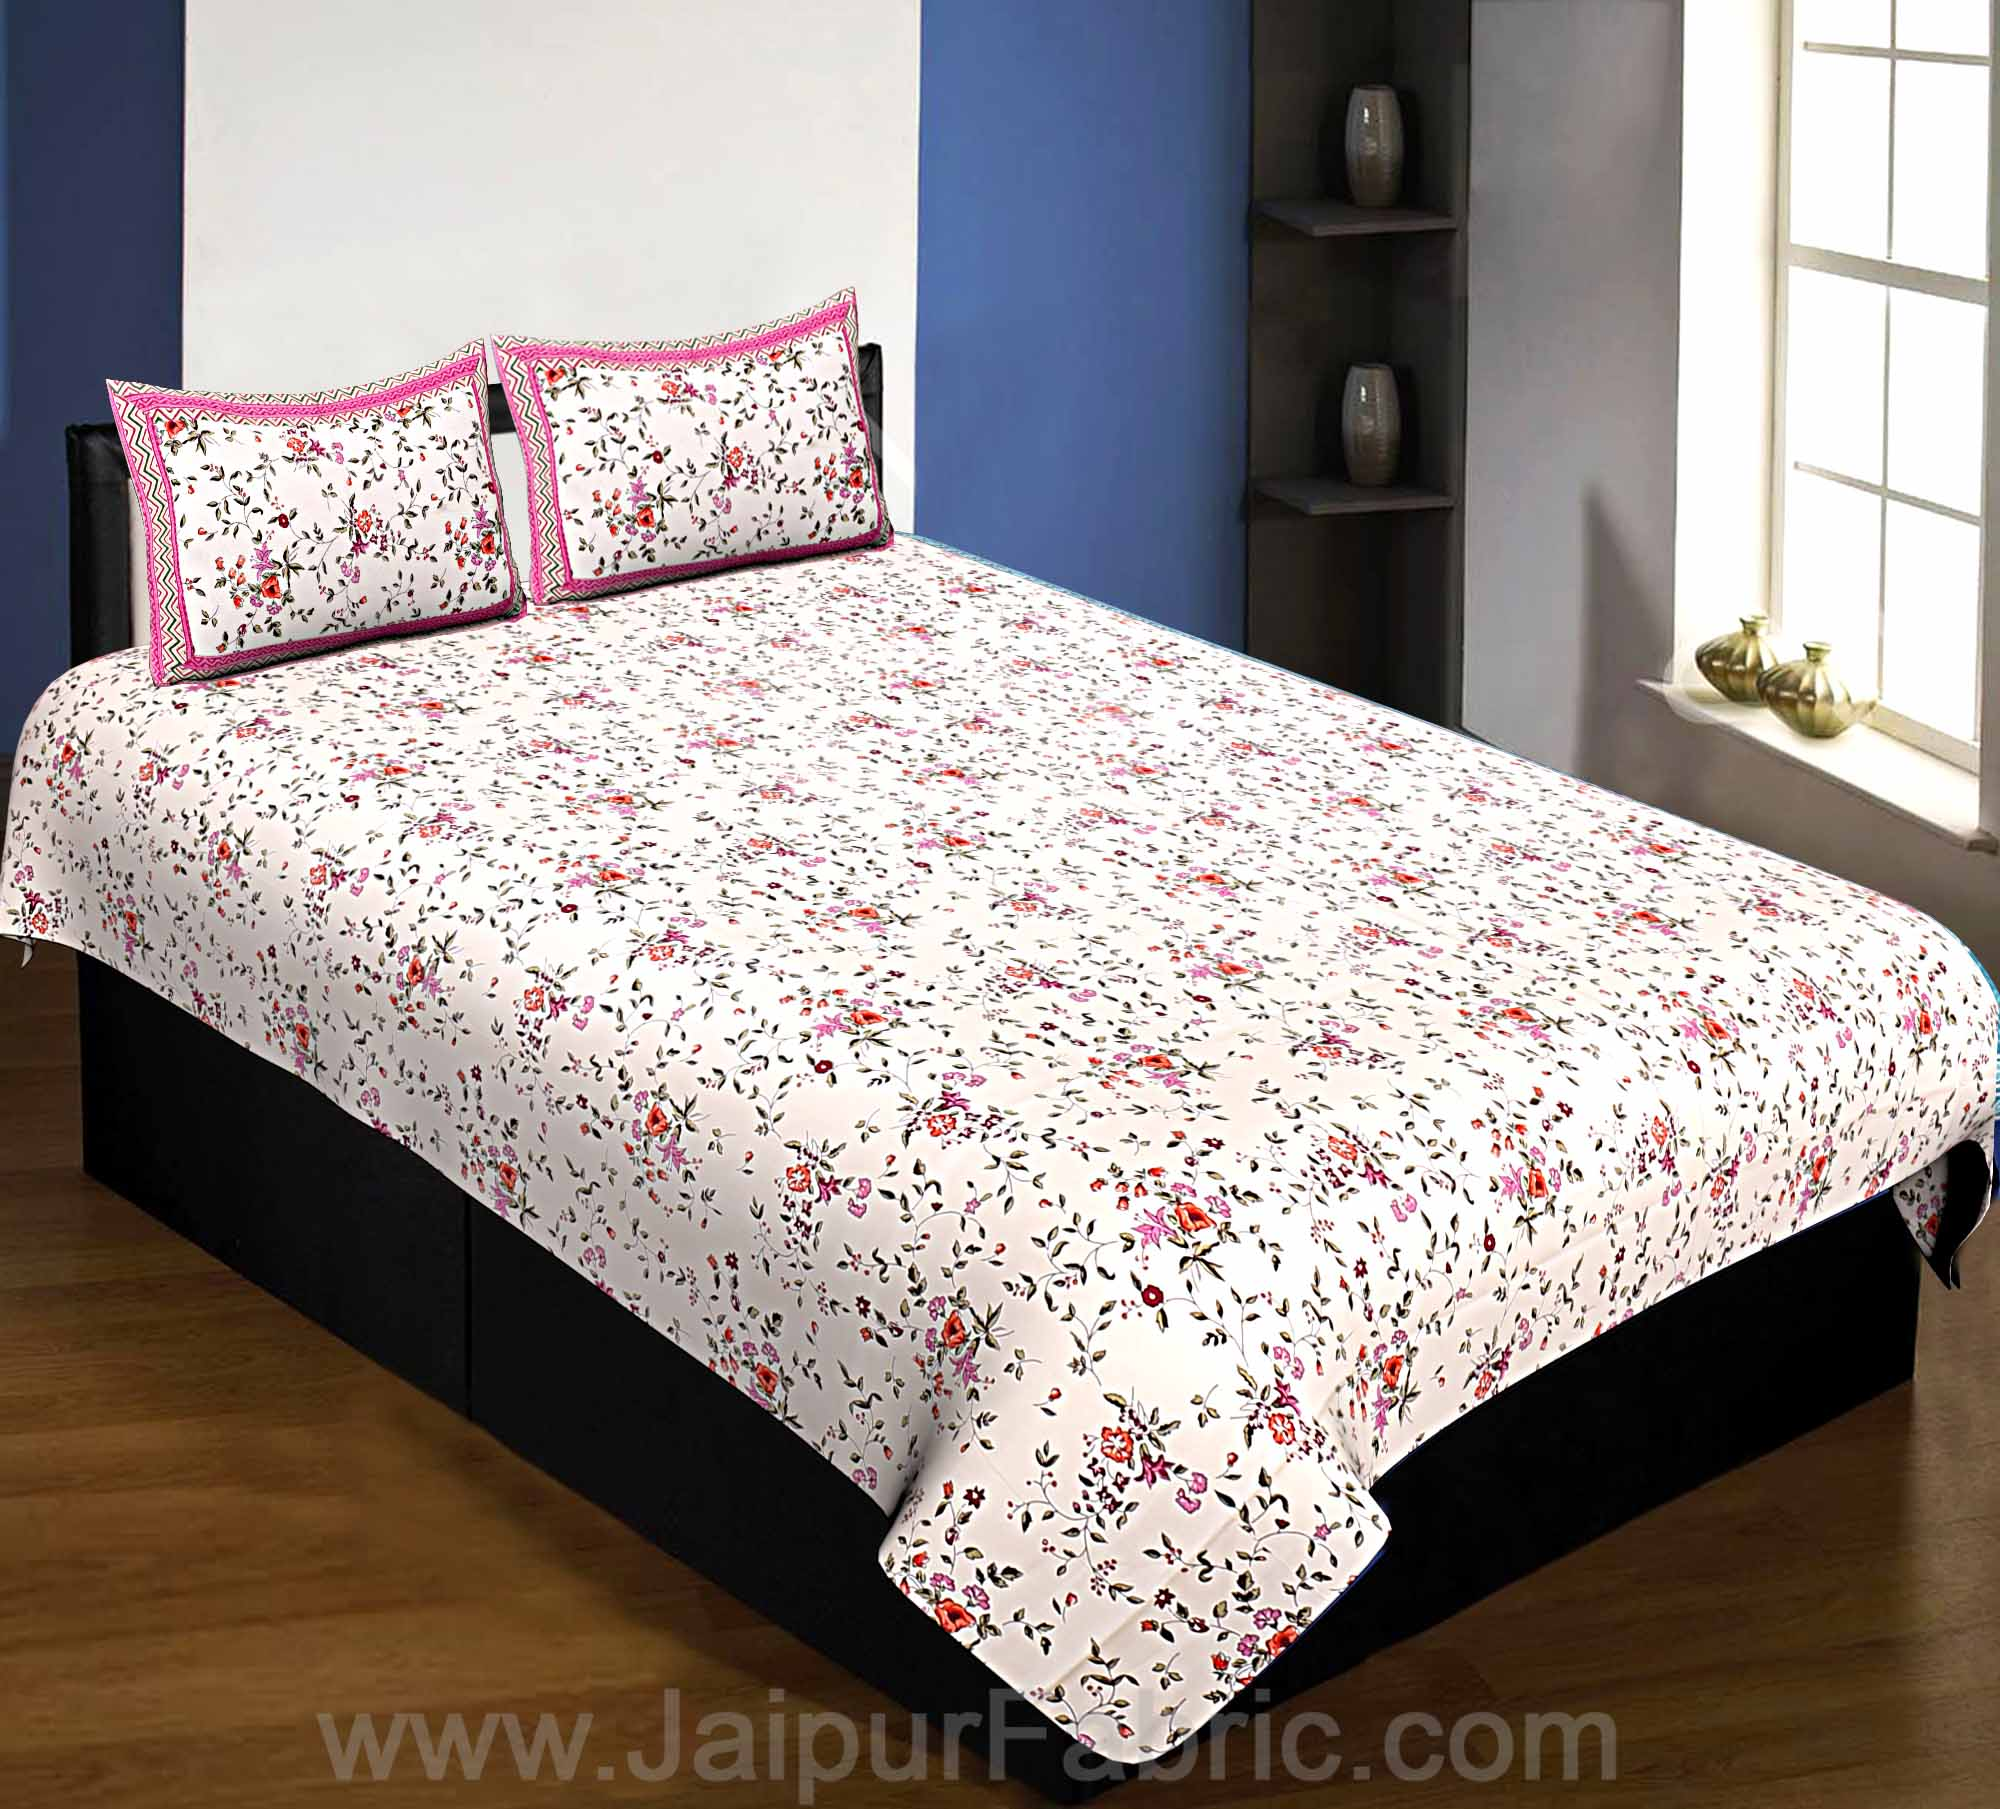 Pure Cotton 240 TC Single bedsheet in pink seamless floral print